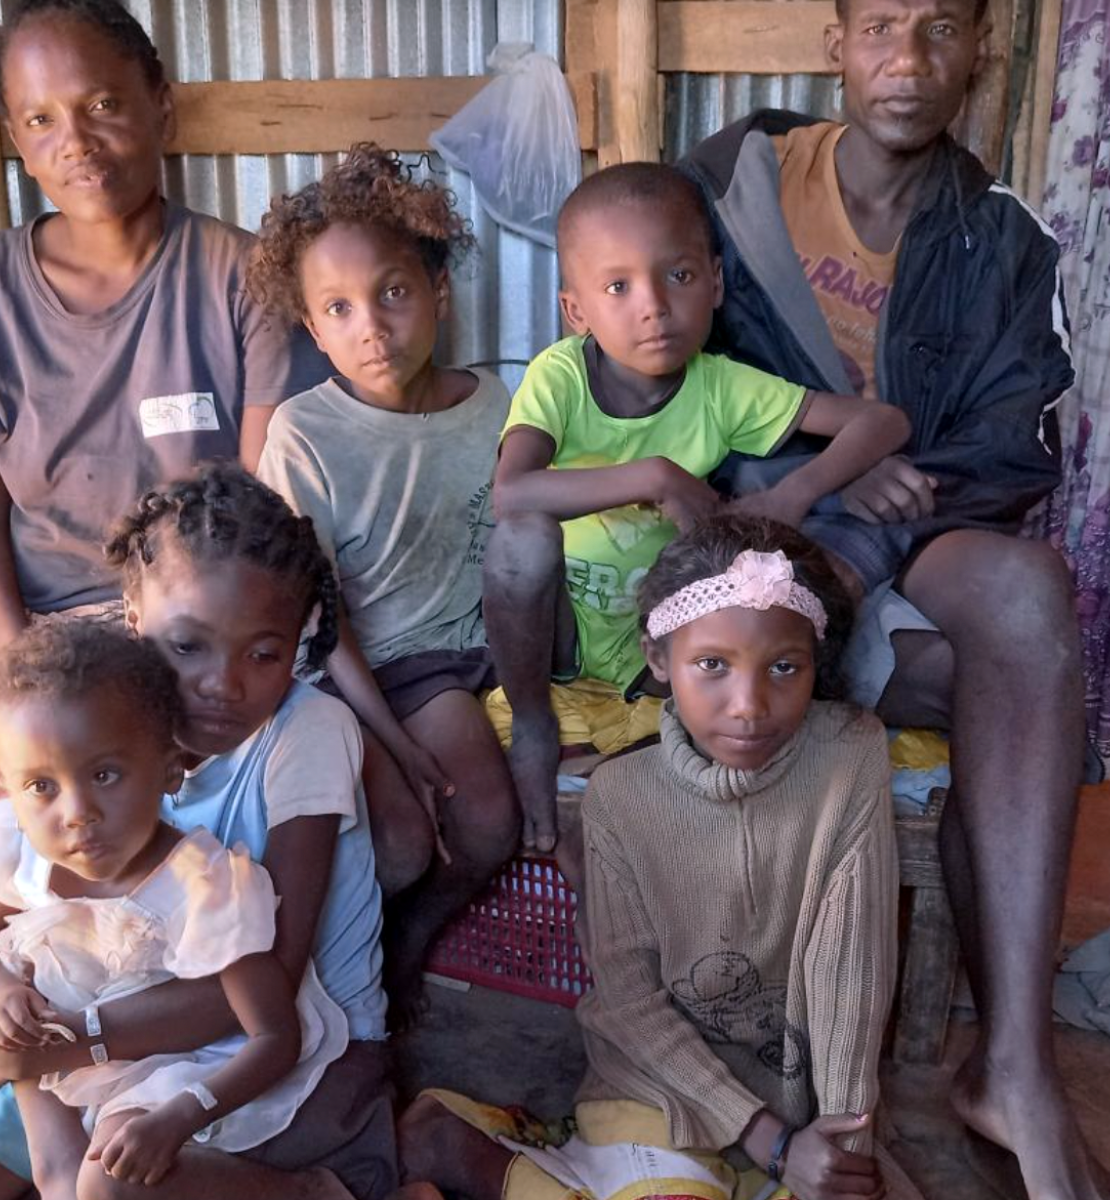 Fagnosea and Masy and their family sit together inside their home.